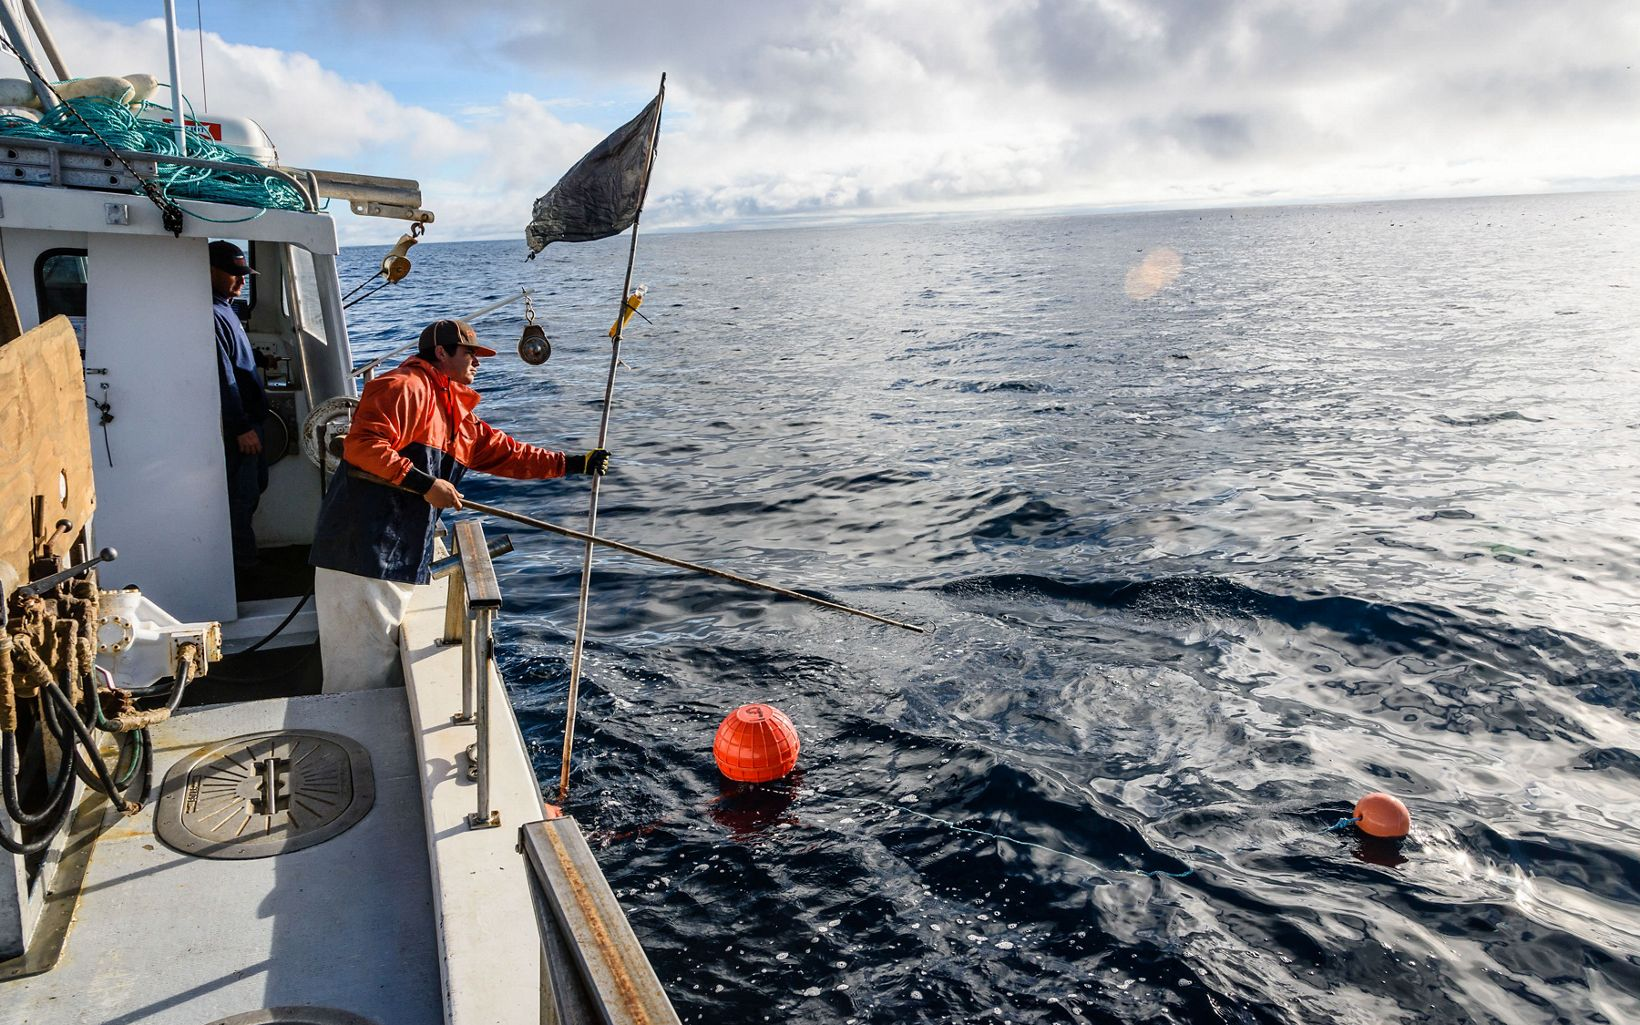 Fisherman holding a flag and stick, leaning over the side of a boat with orange buoys floating the water.